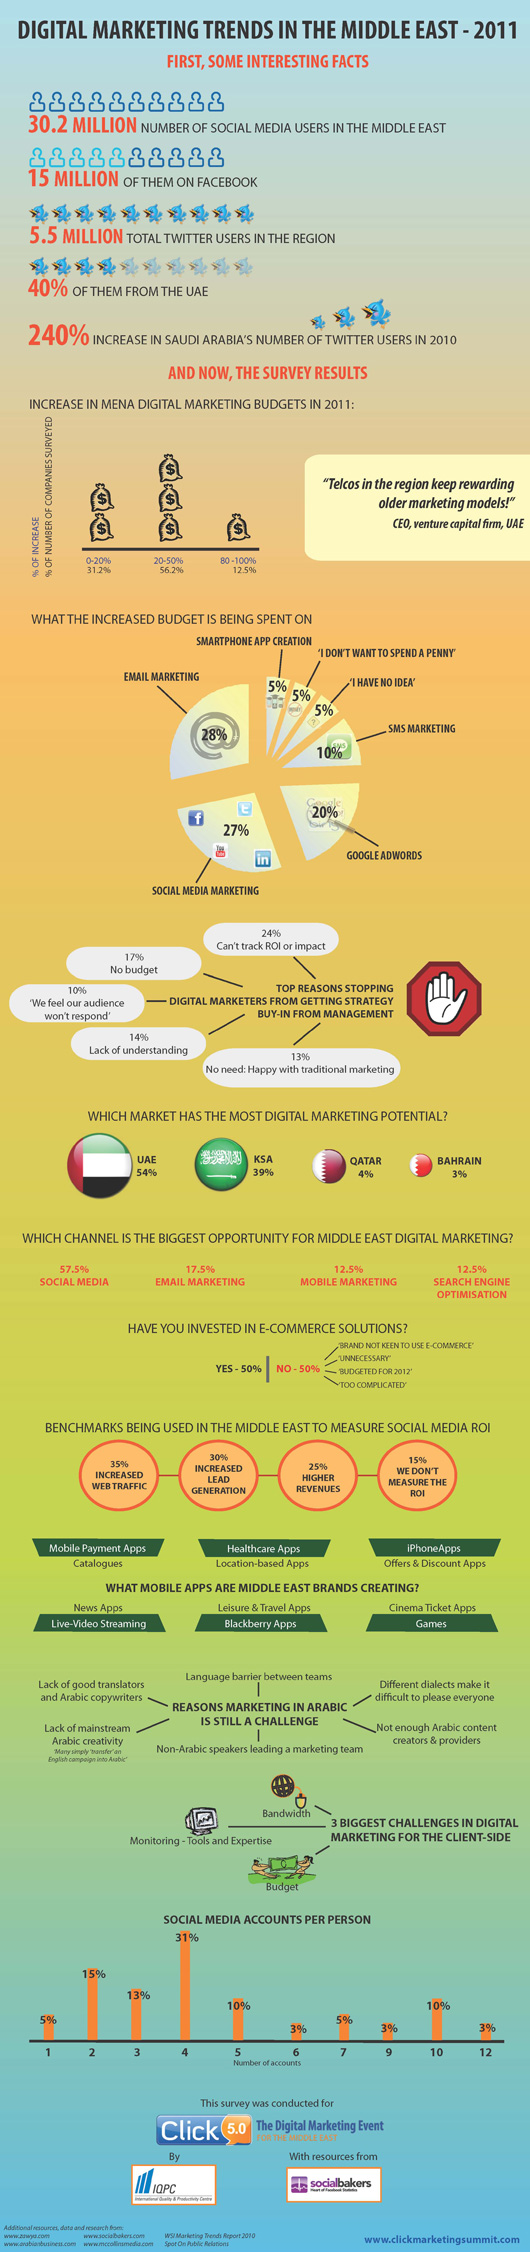 Digital Marketing Trends in the Middle East